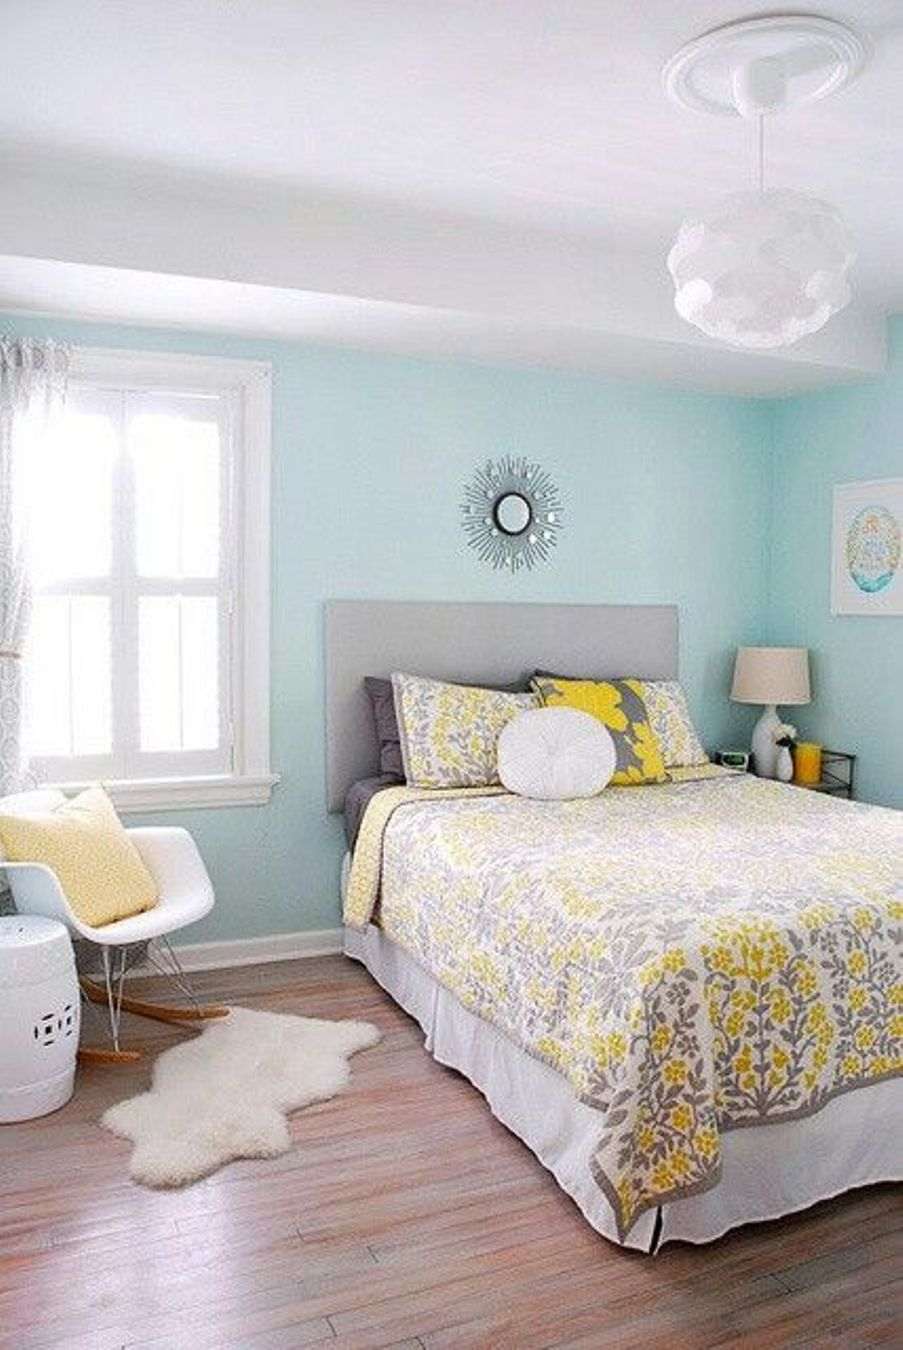 small bedroom color schemes pictures options amp ideas hgtv best paint colors for small room some tips homesfeed 476